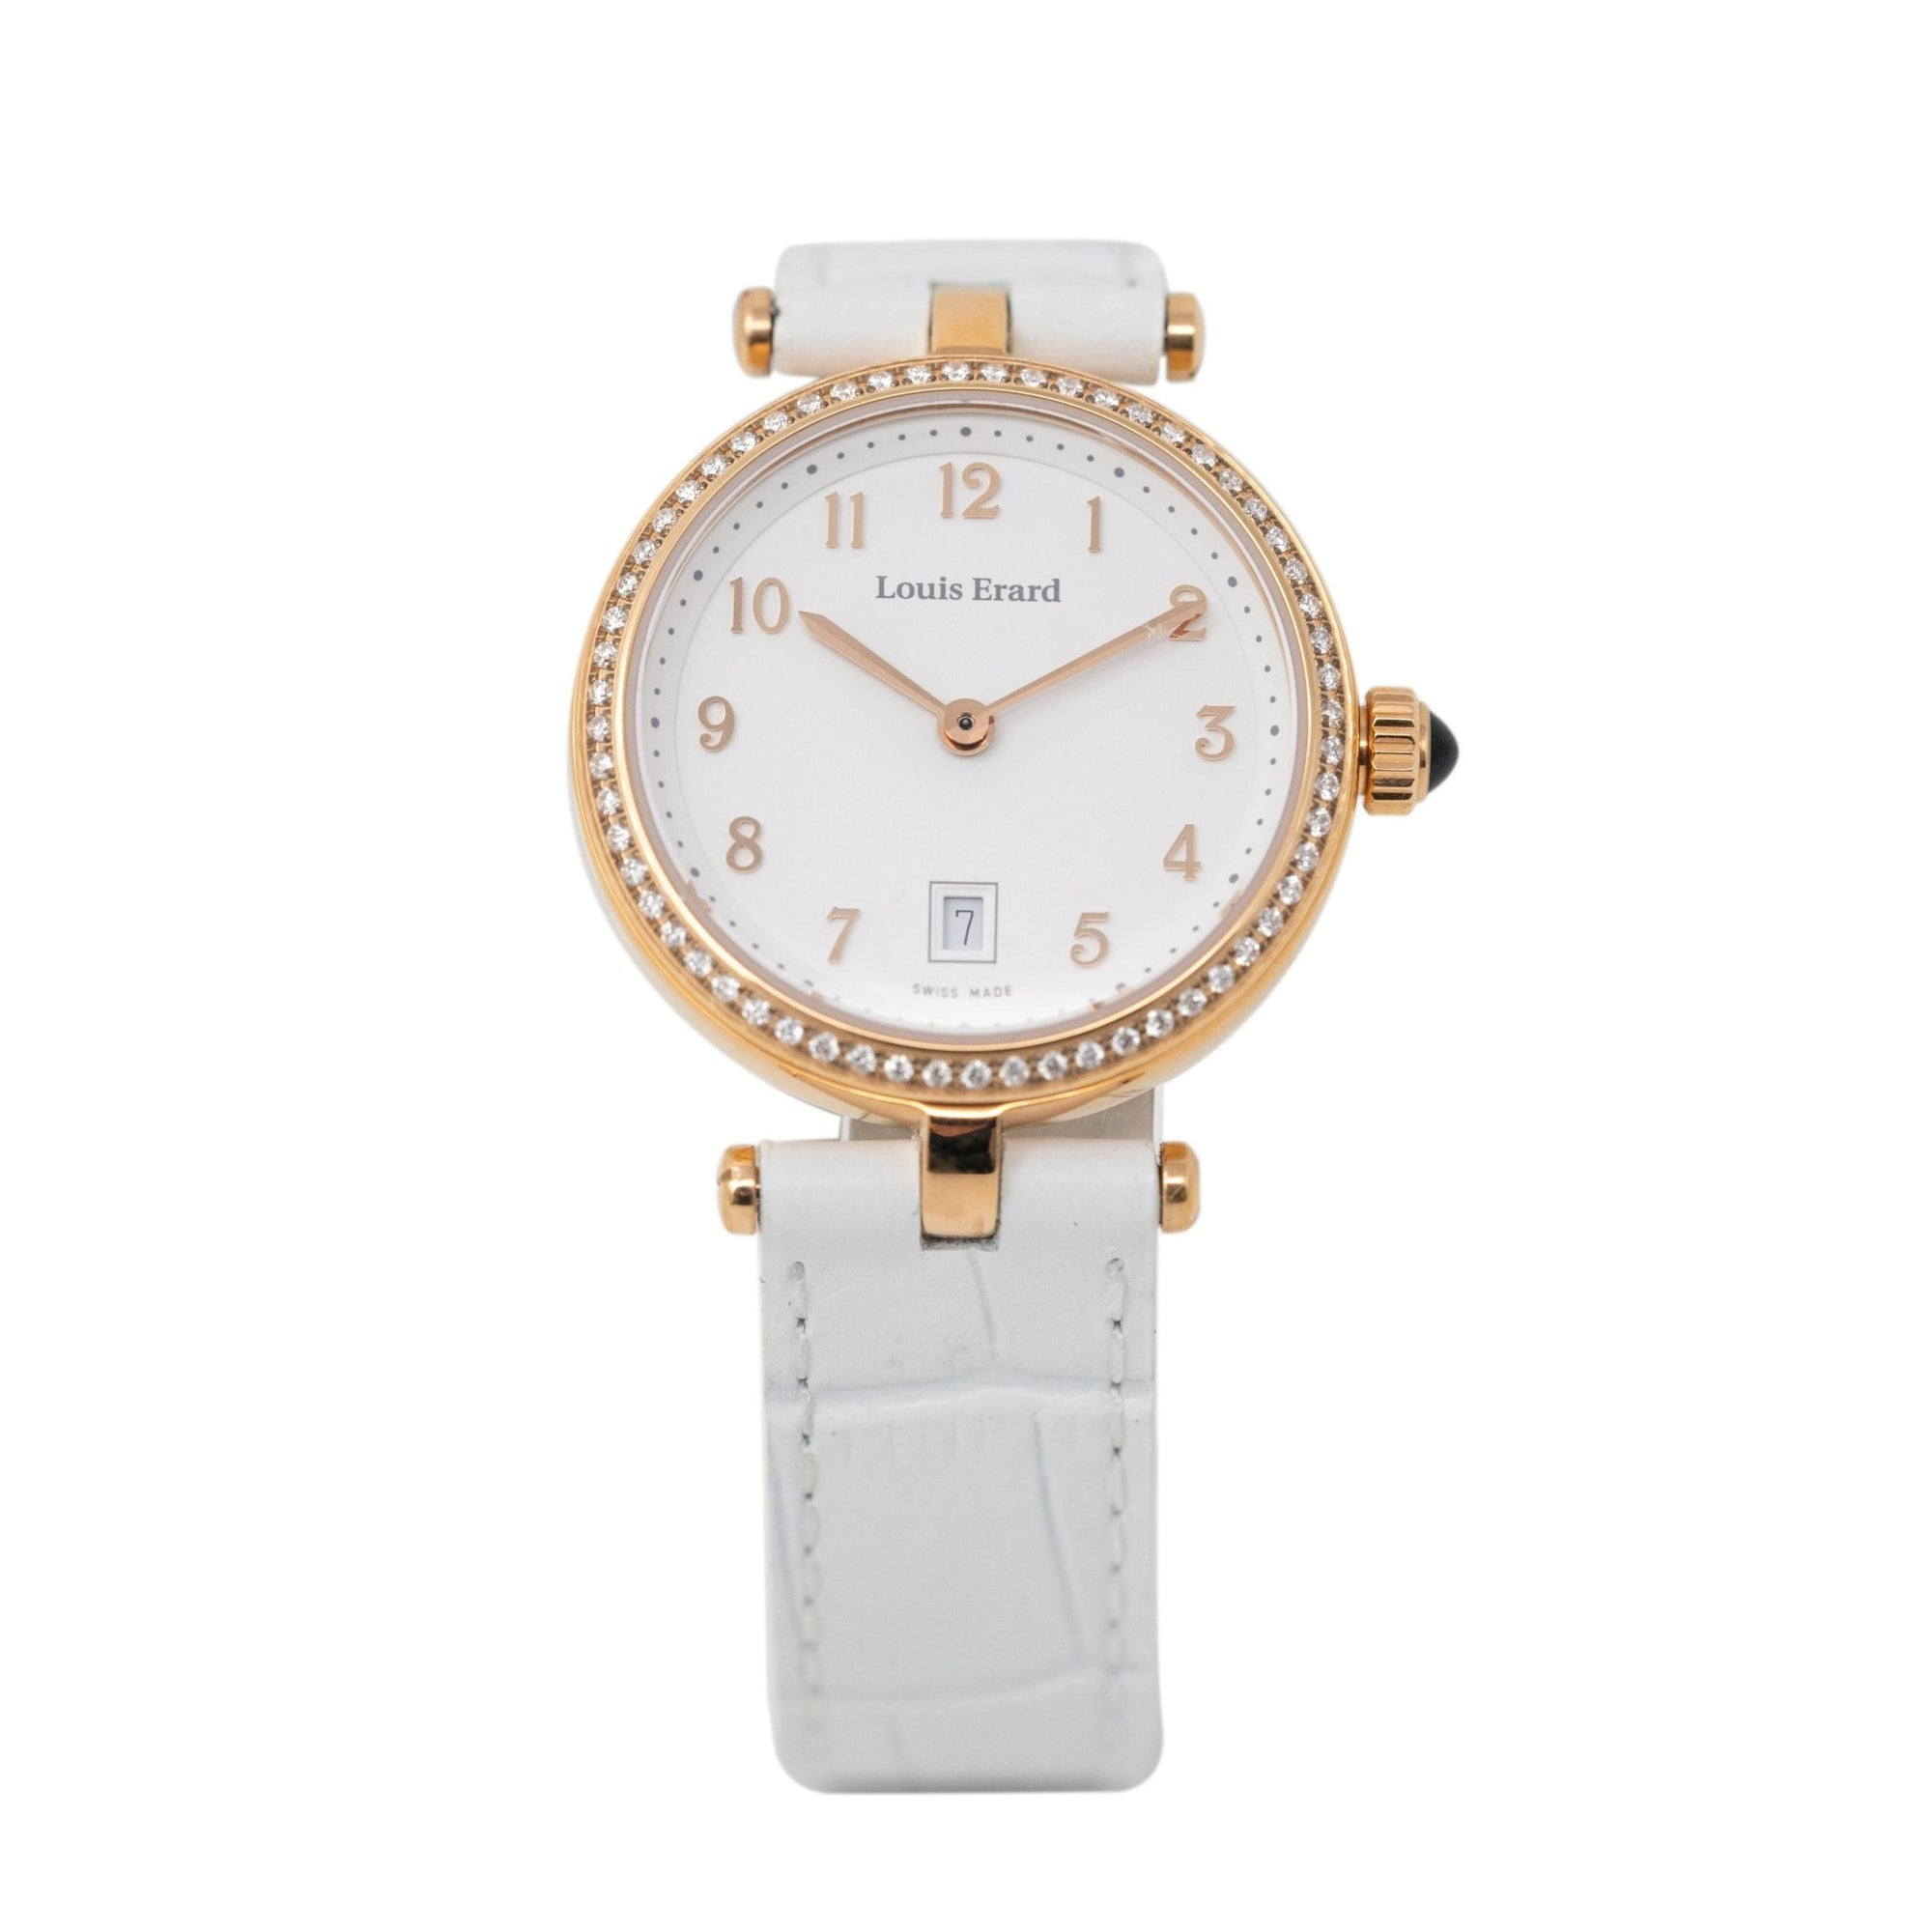 Louis Erard Romance Diamonds Date White - Watches & Crystals